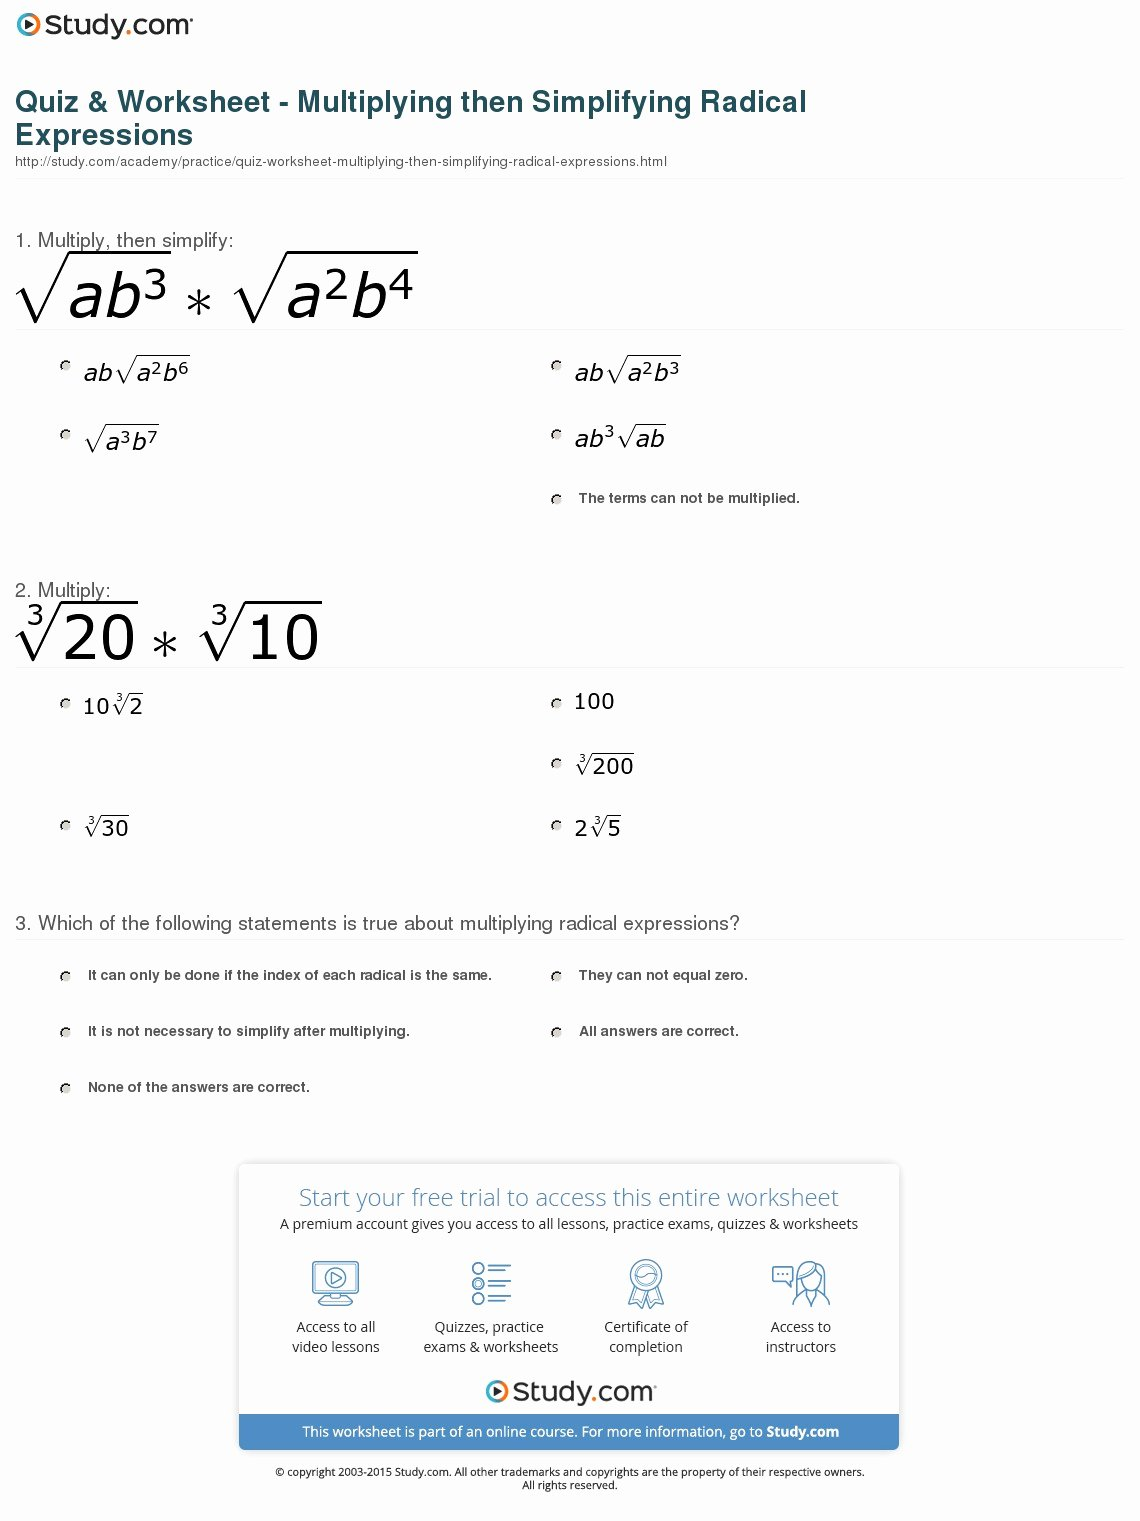 Simplifying Algebraic Expressions Worksheet Answers Unique Quiz & Worksheet Multiplying then Simplifying Radical